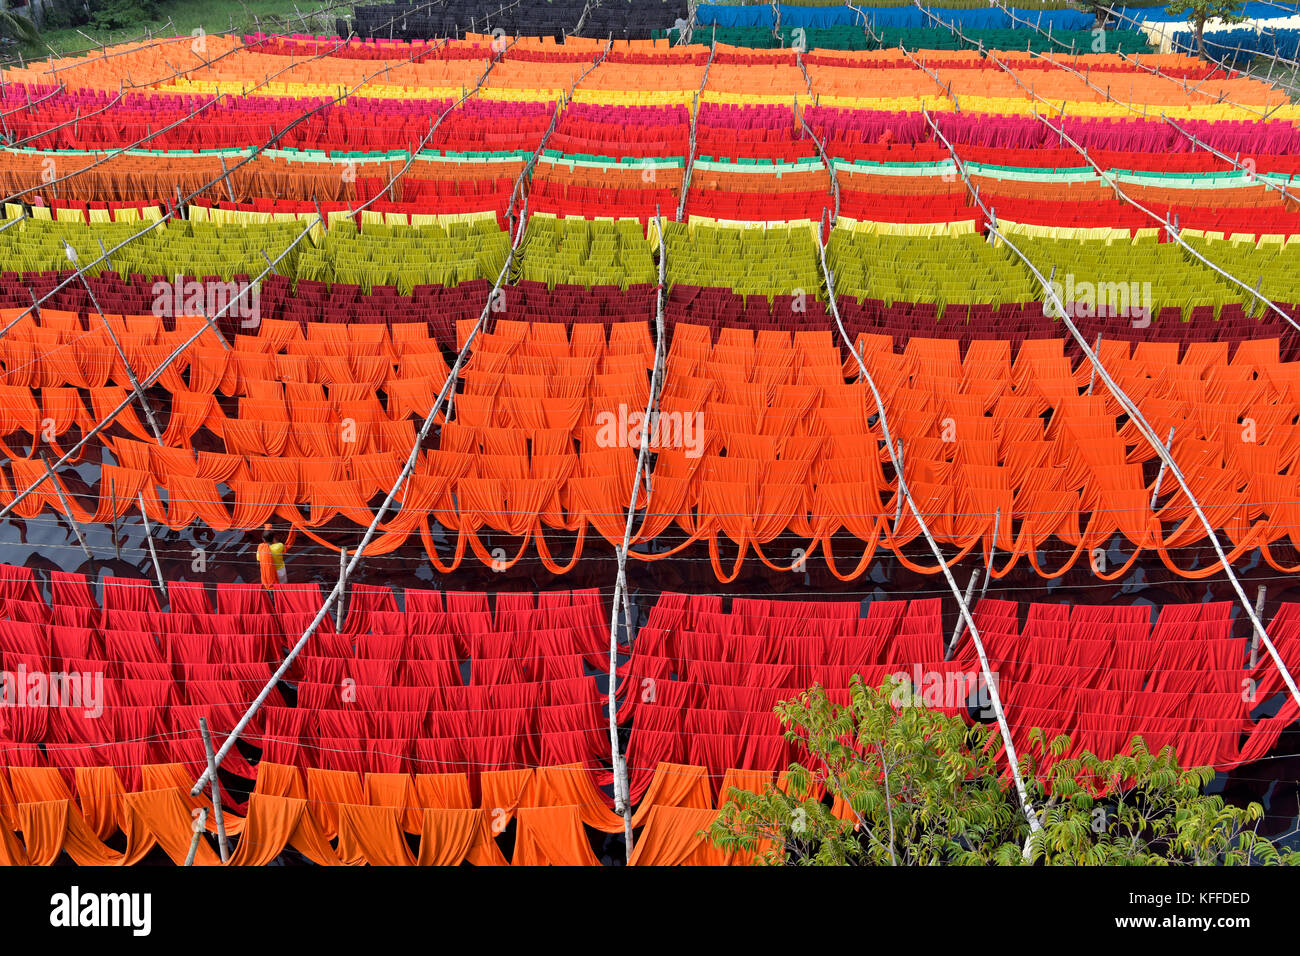 Warp Knitting Stock Photos & Warp Knitting Stock Images - Alamy